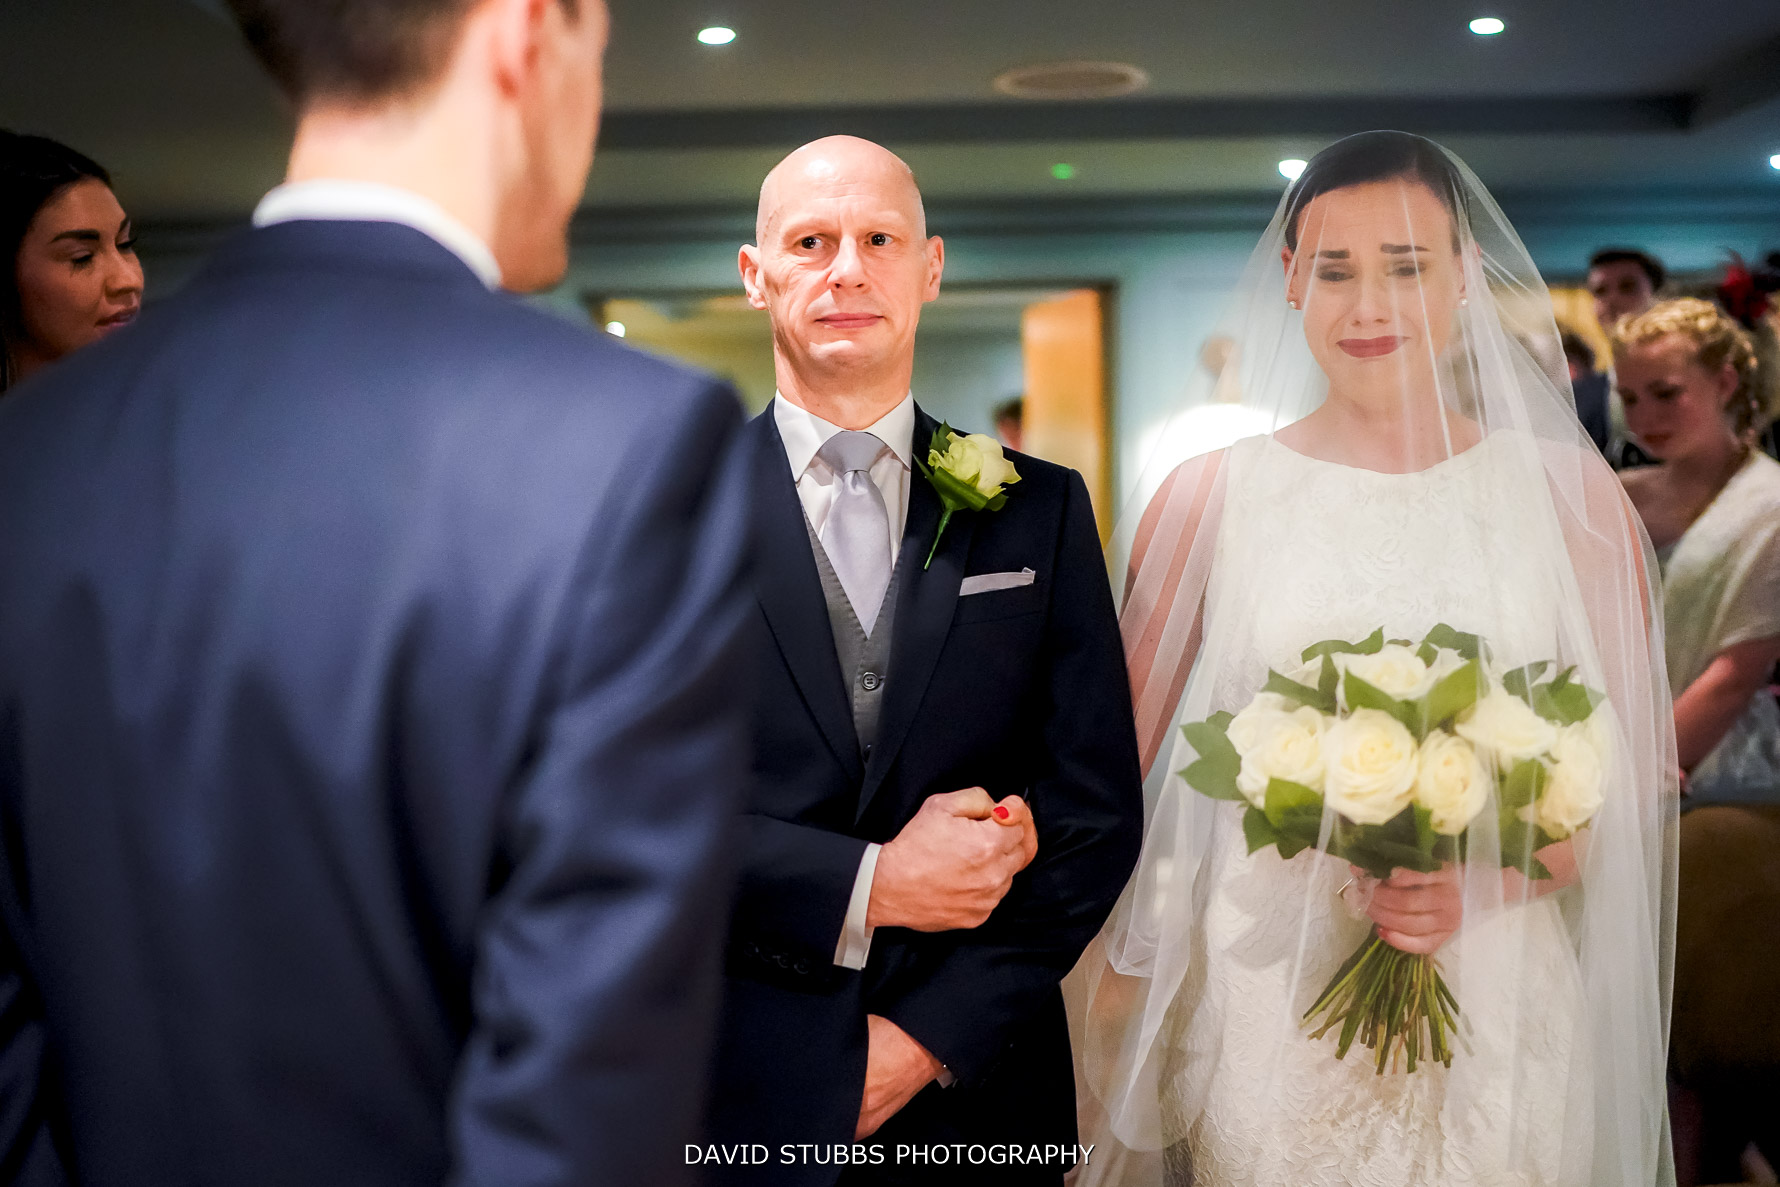 walking ddown the isle with her dad